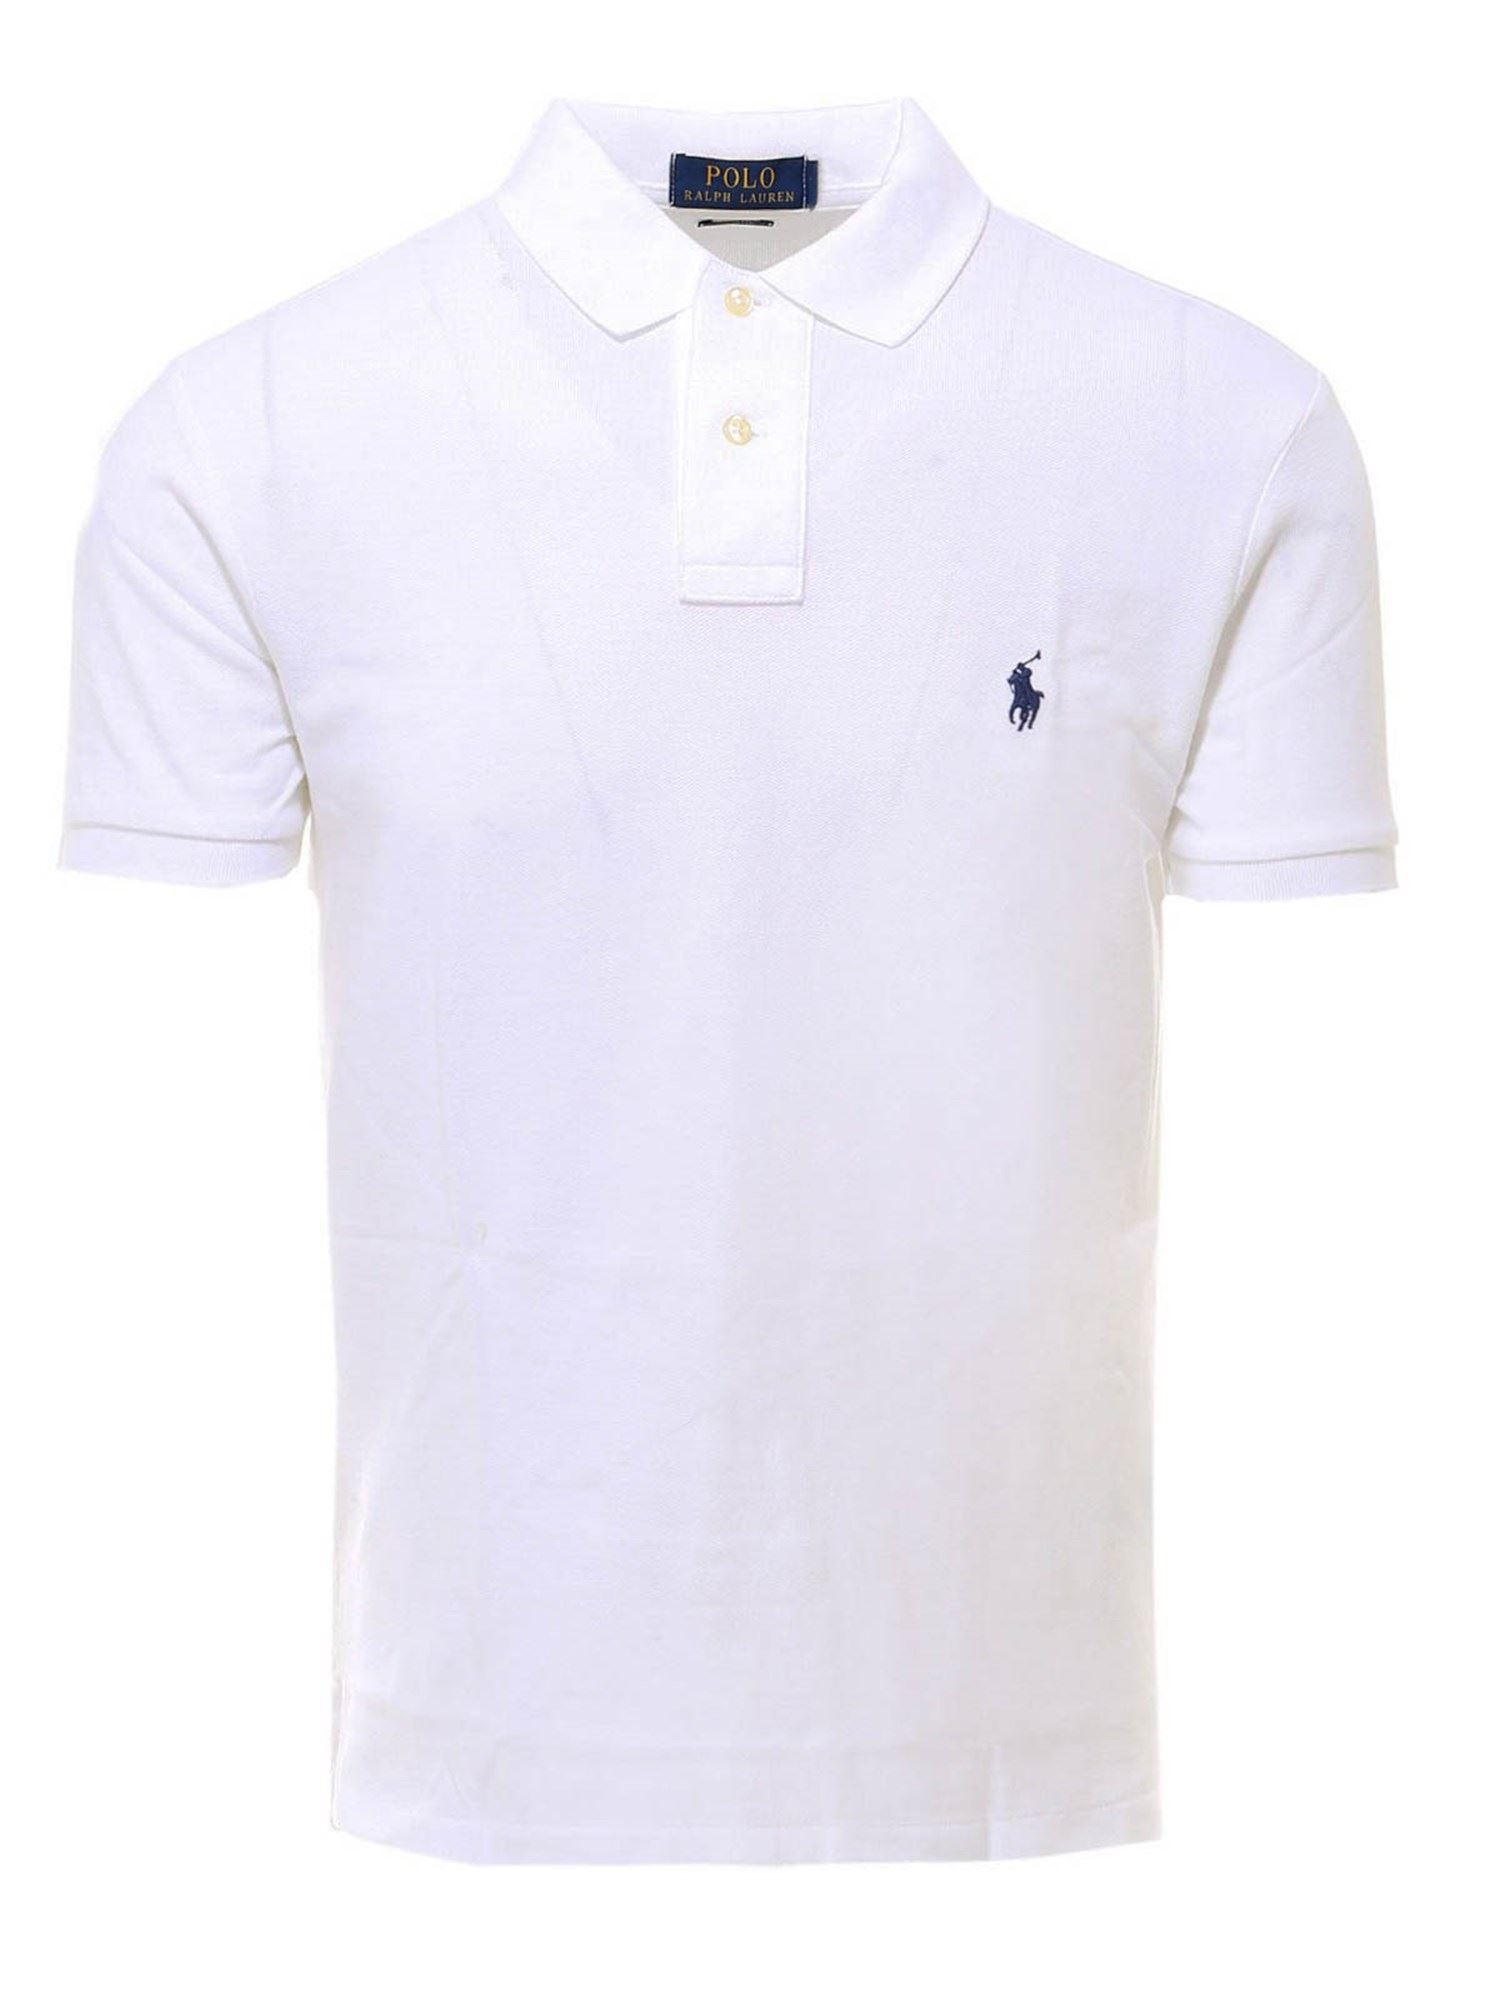 POLO RALPH LAUREN POLO RALPH LAUREN WHITE COTTON POLO SHIRT